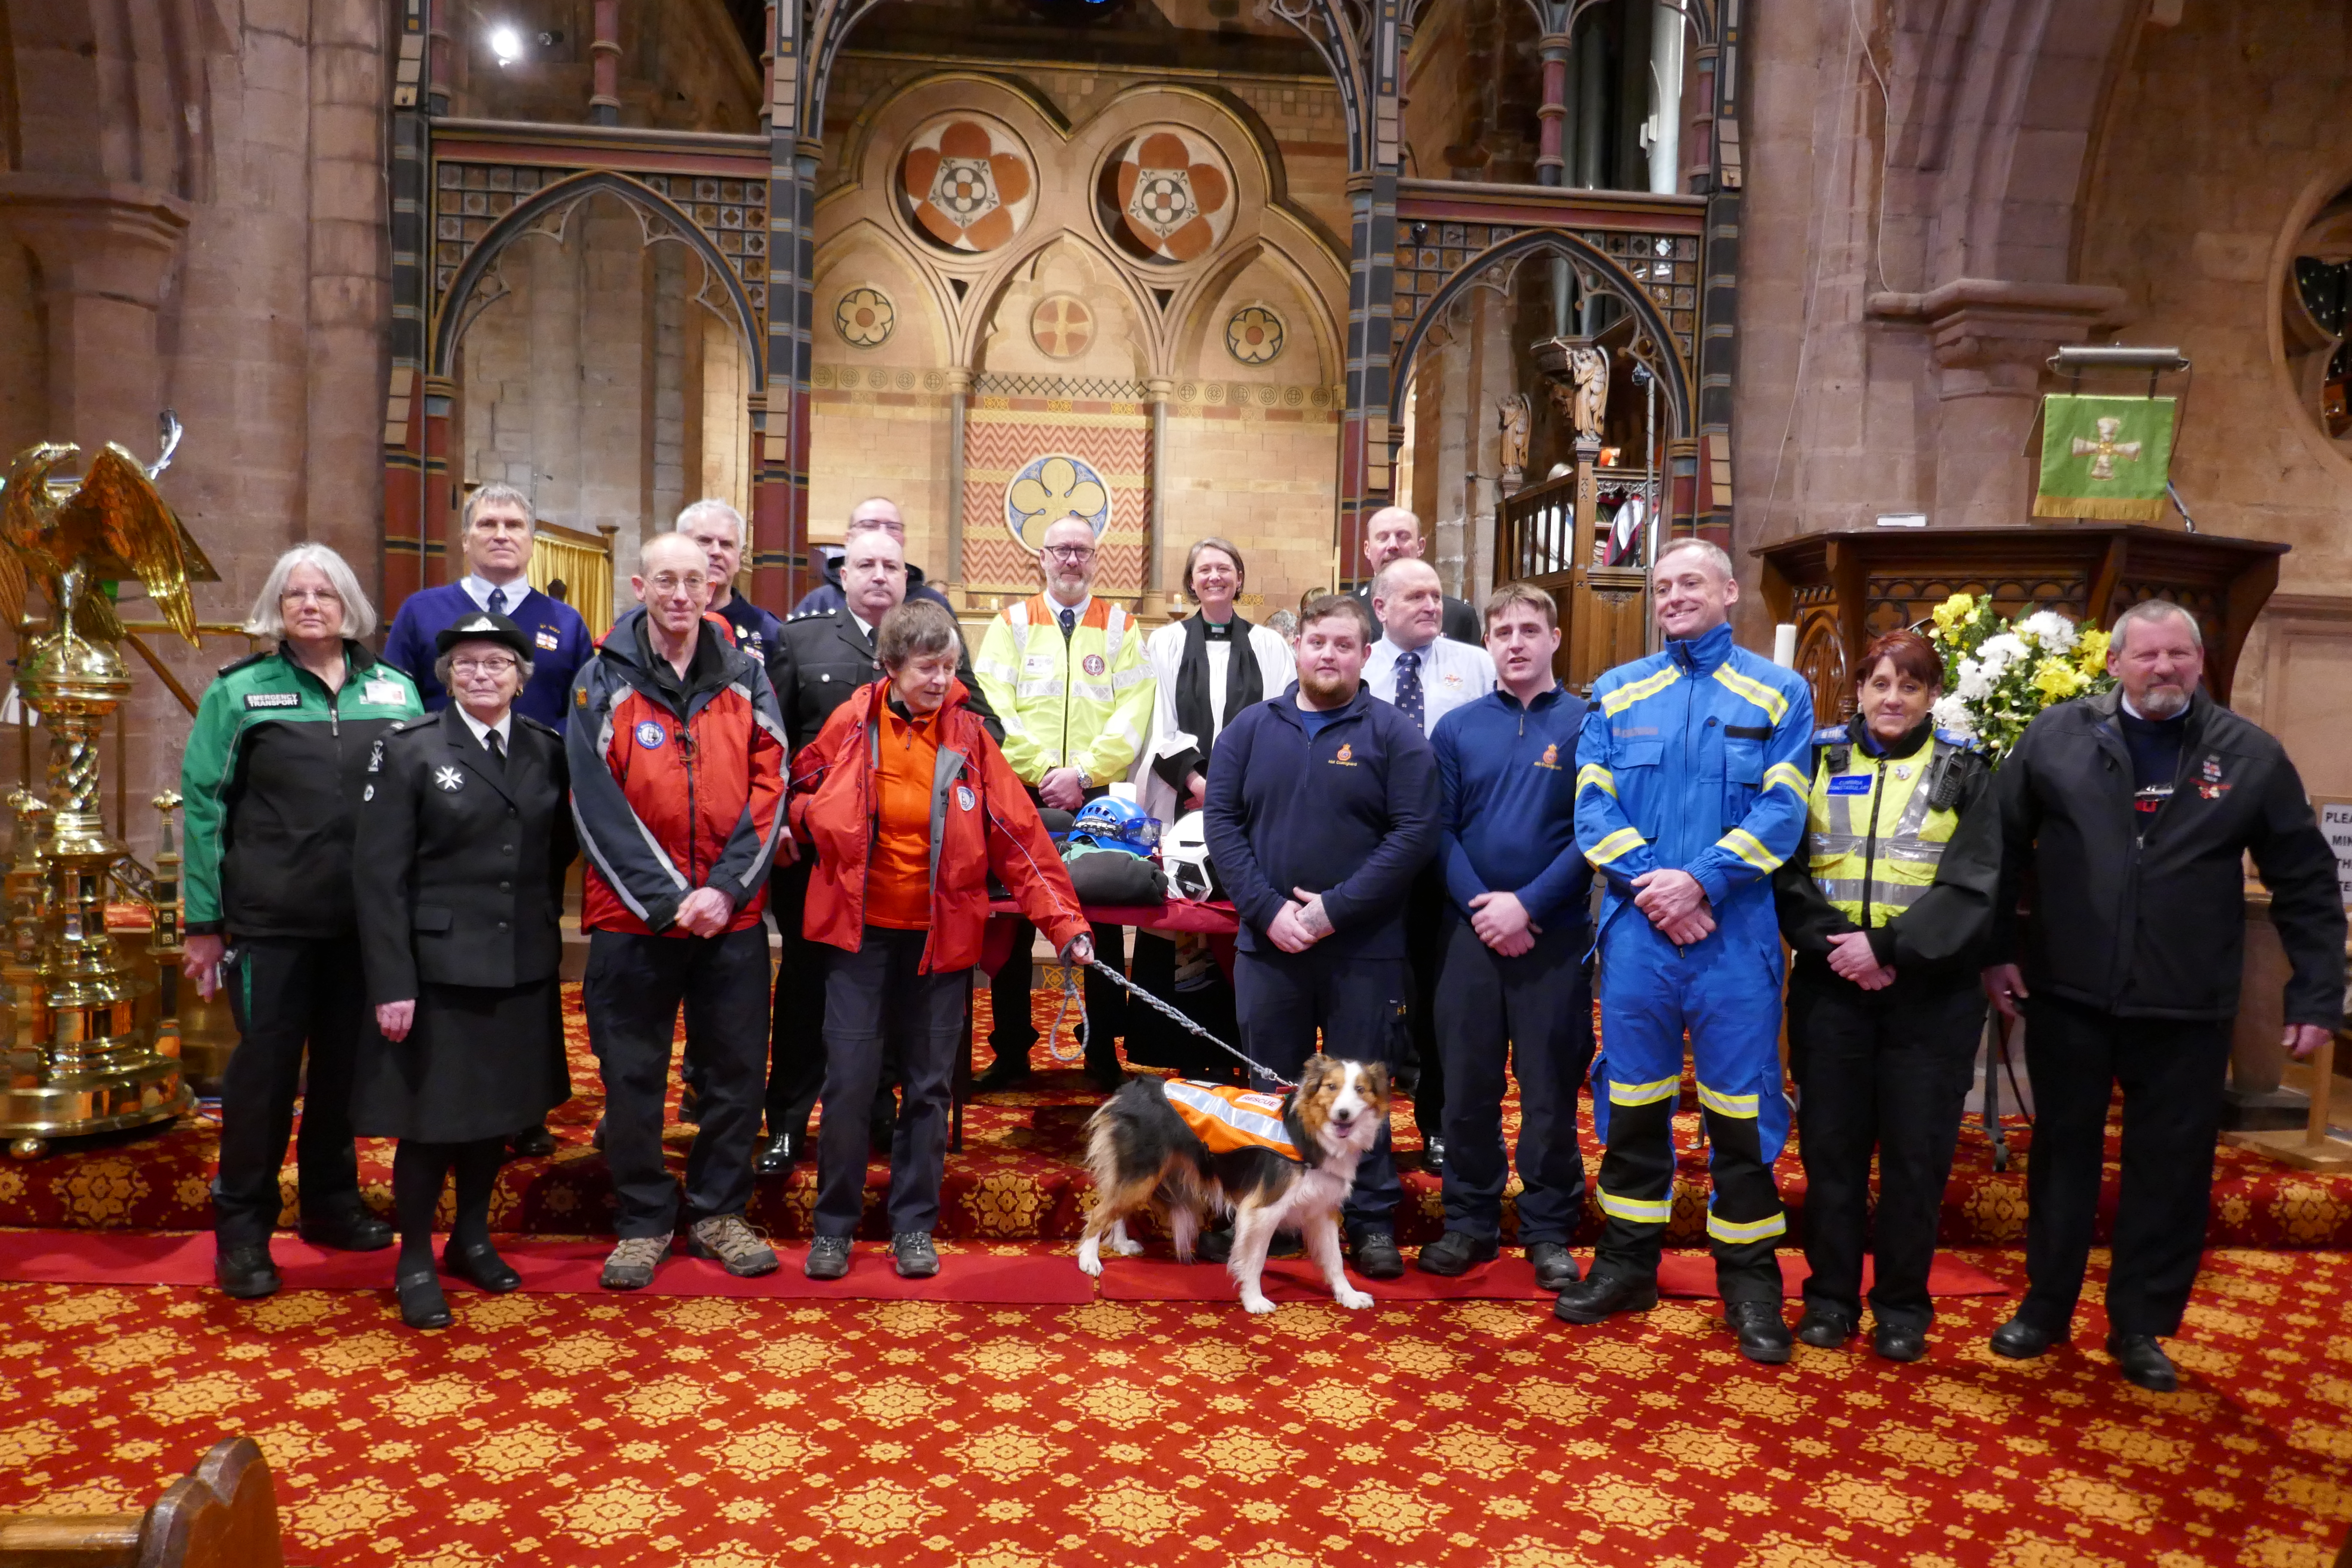 Members of Copeland's emergency services gather for a team photo at the end of the thanksgiving service.